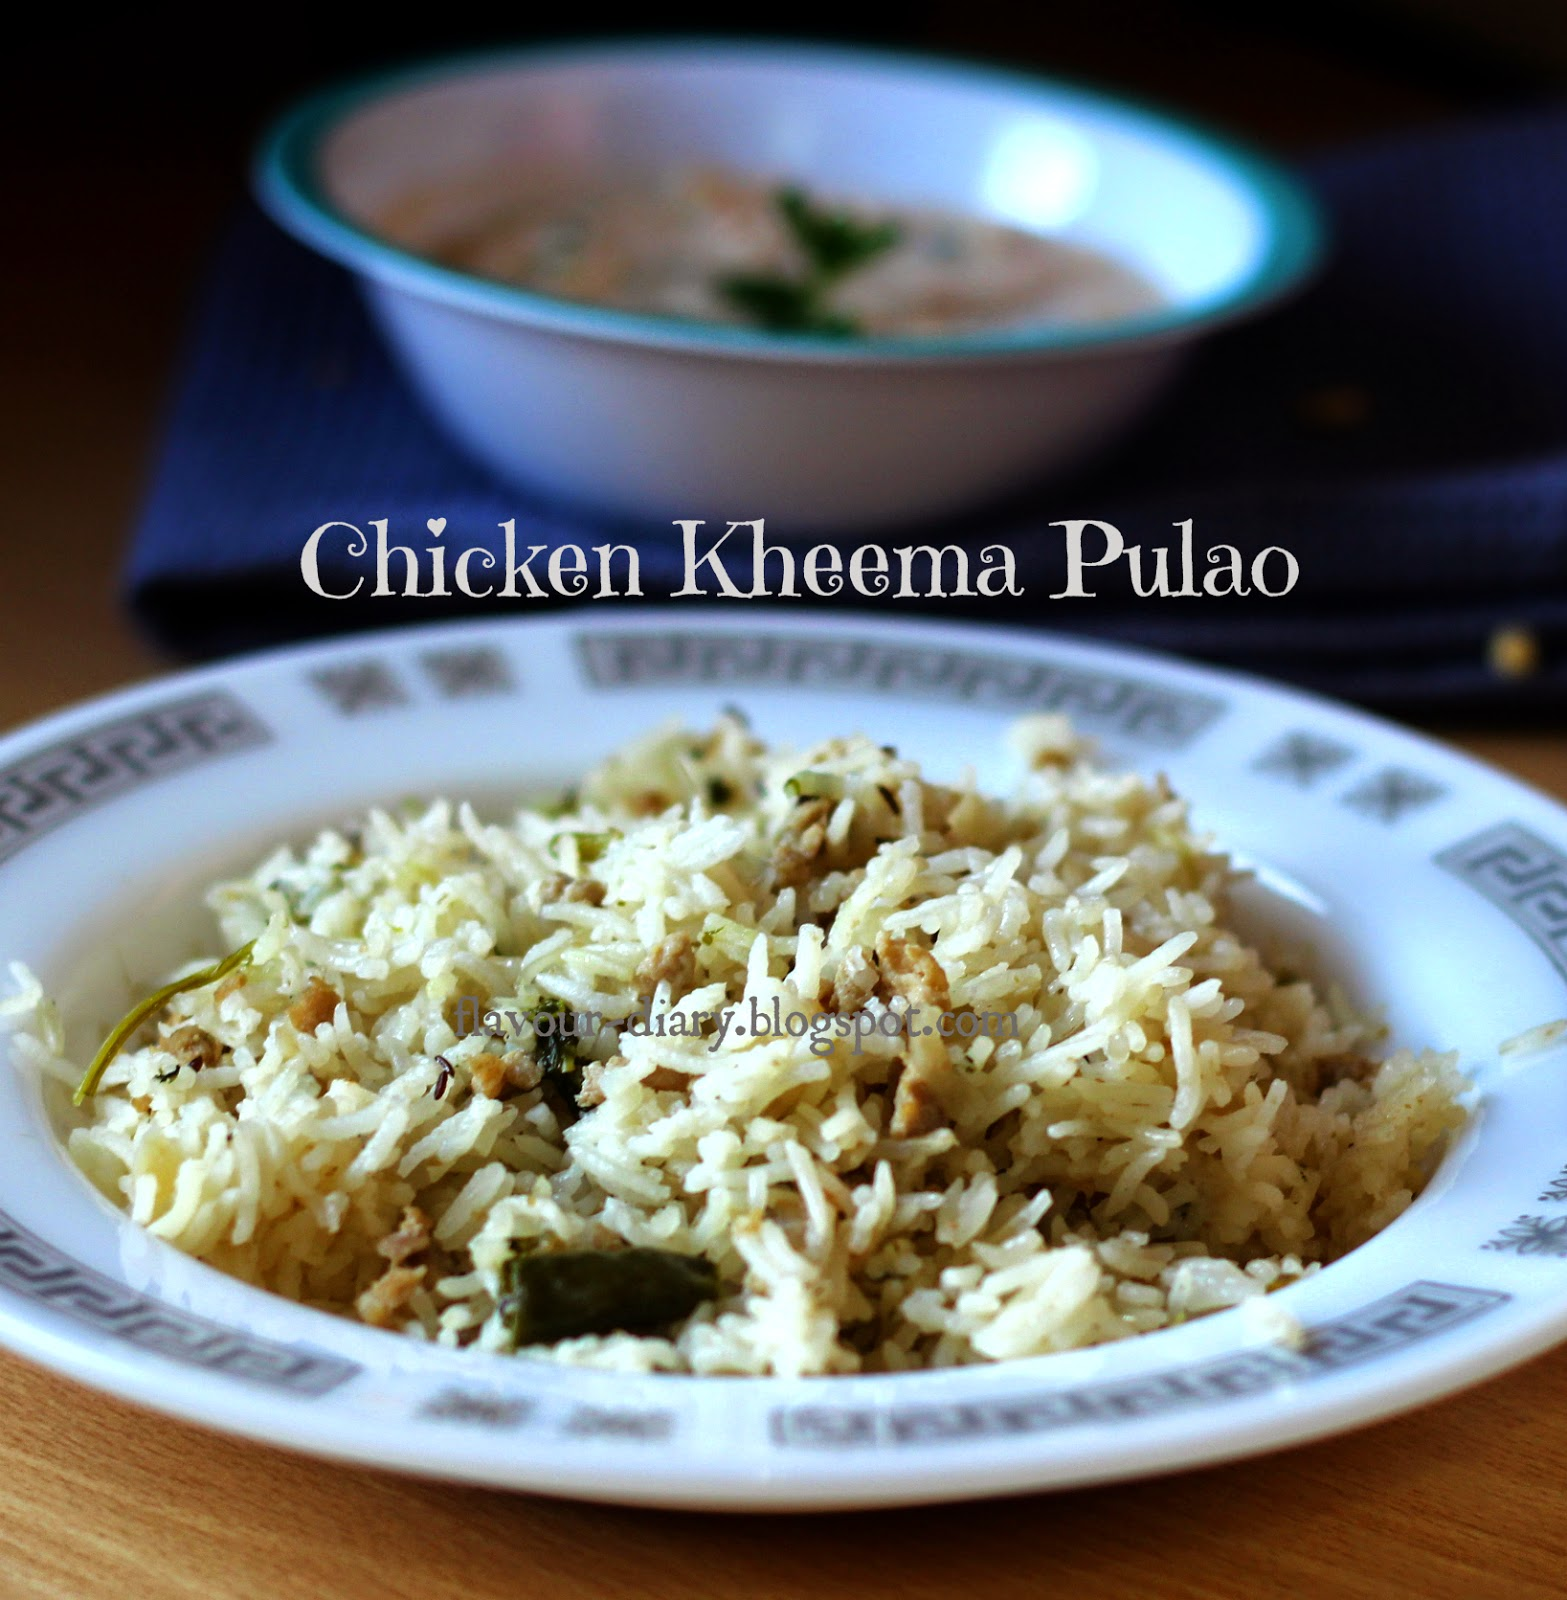 Chicken Kheem Pulao recipe